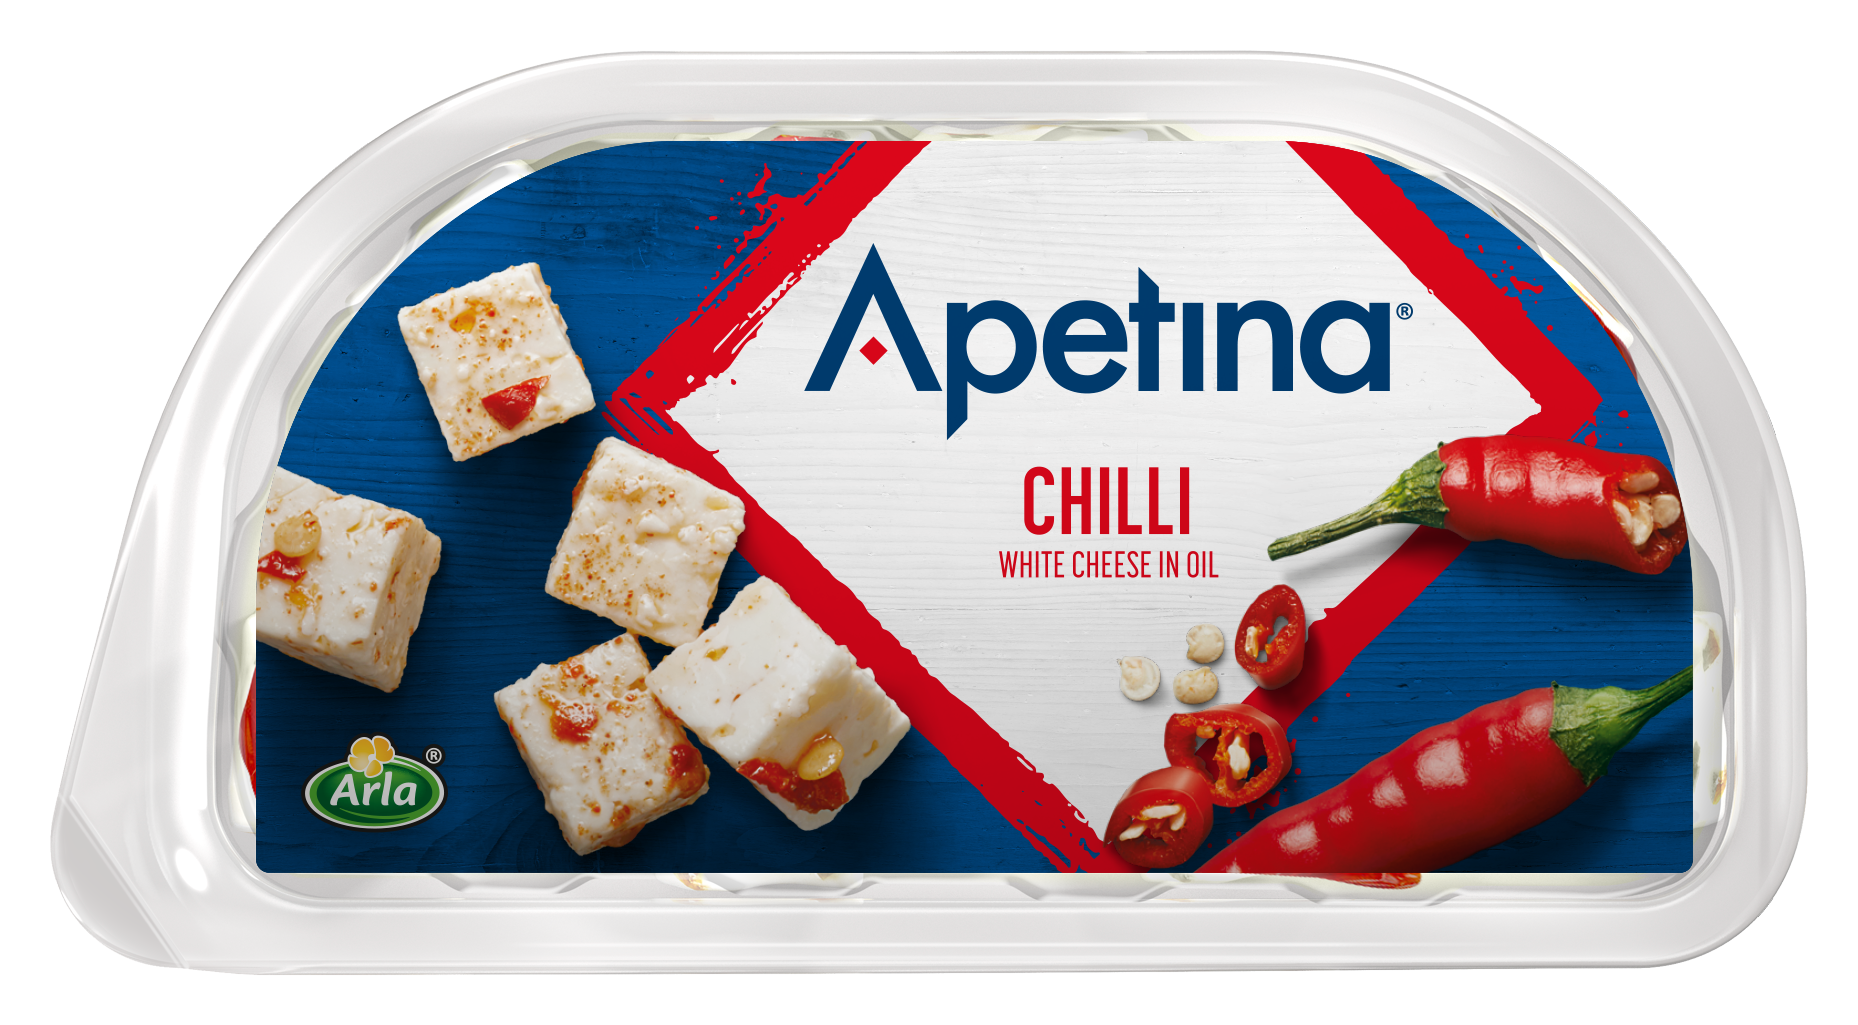 Apetina® Apetina white cheese cubes in oil chili 100g